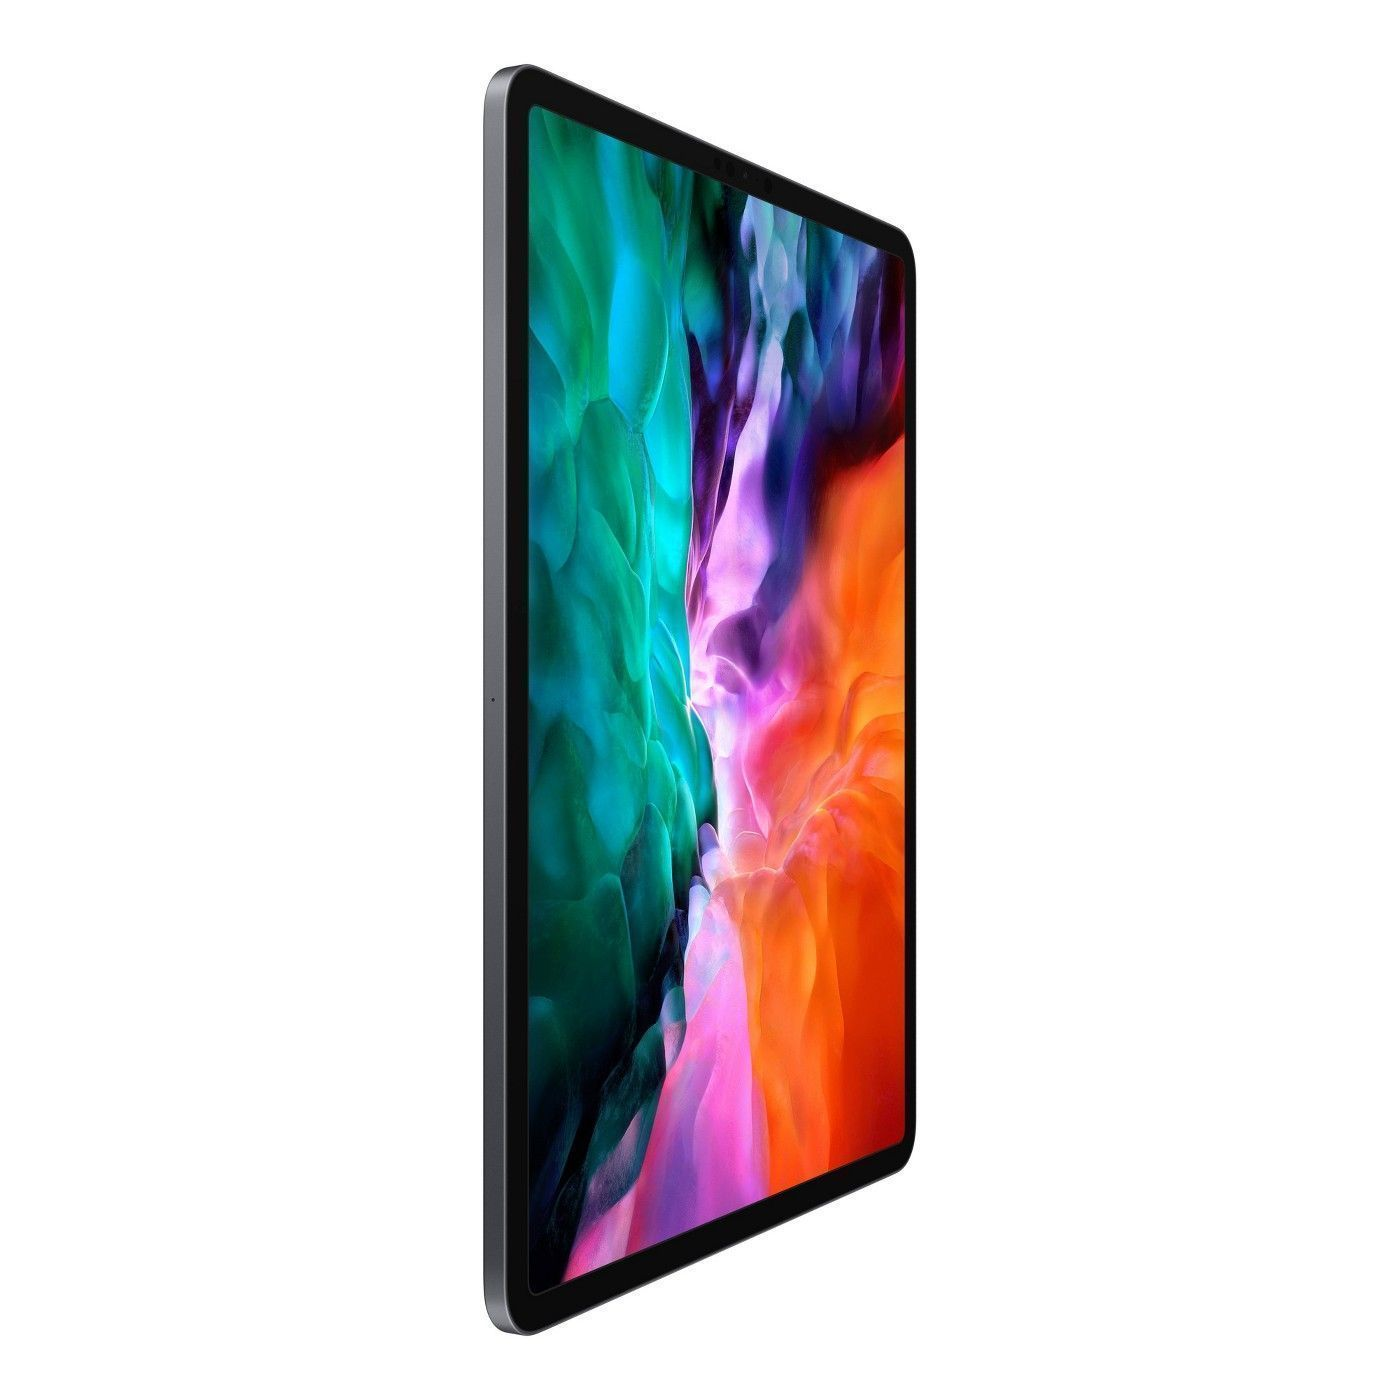 Apple iPad Pro 11-inch Wi-Fi Only (2020 Model)